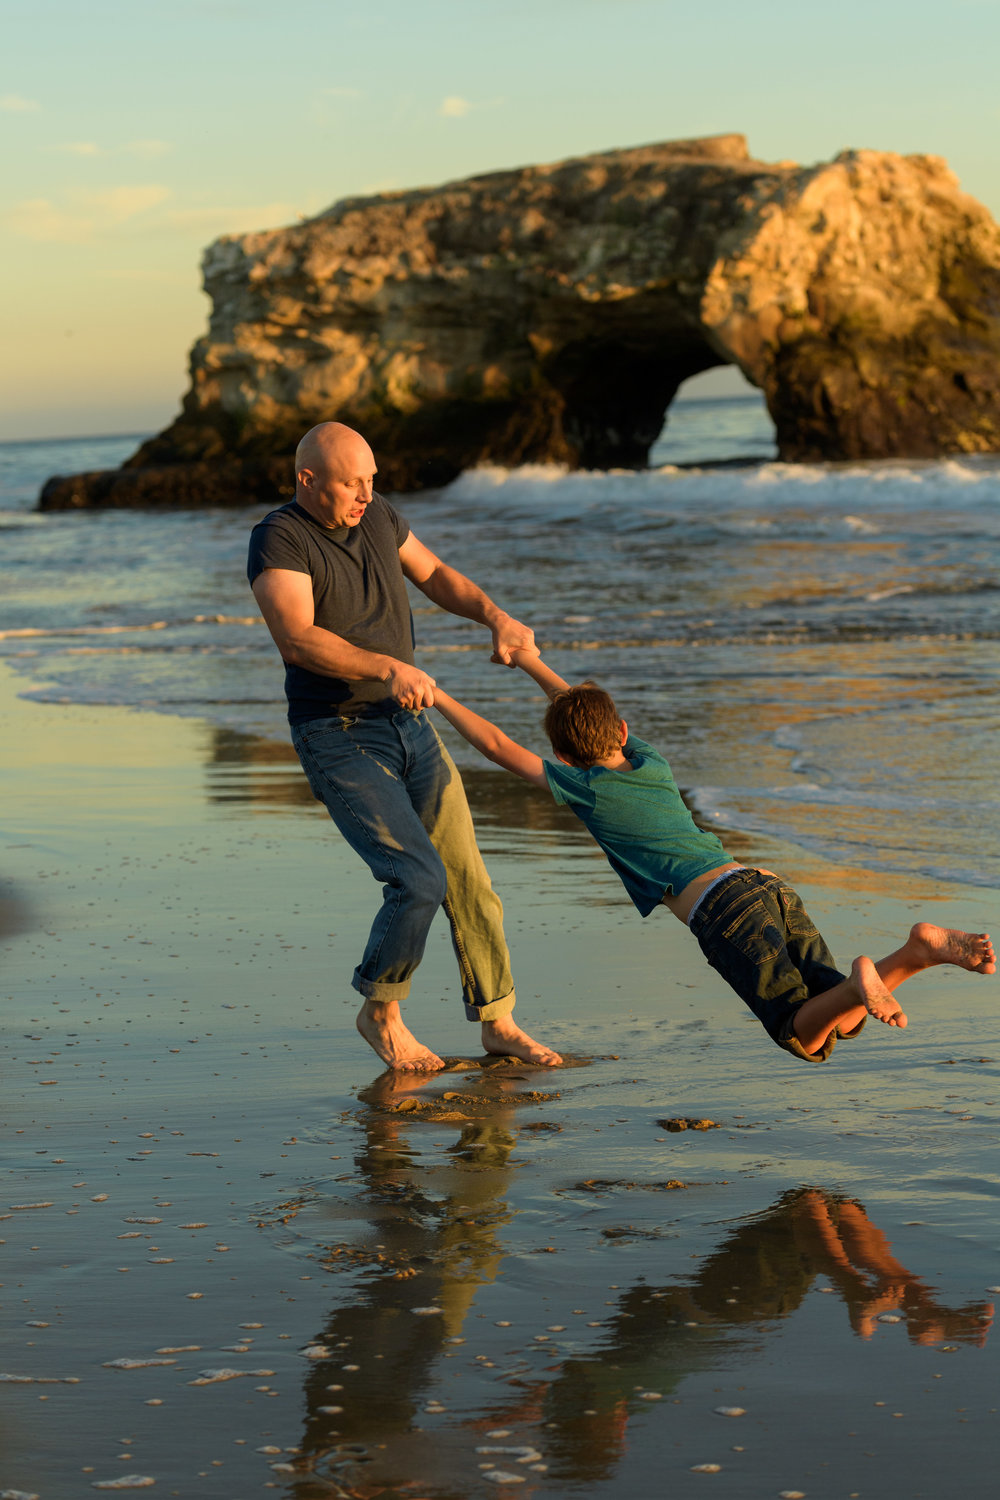 6449_Carrie_K_Natural_Bridges_Santa_Cruz_Family_Photography.jpg